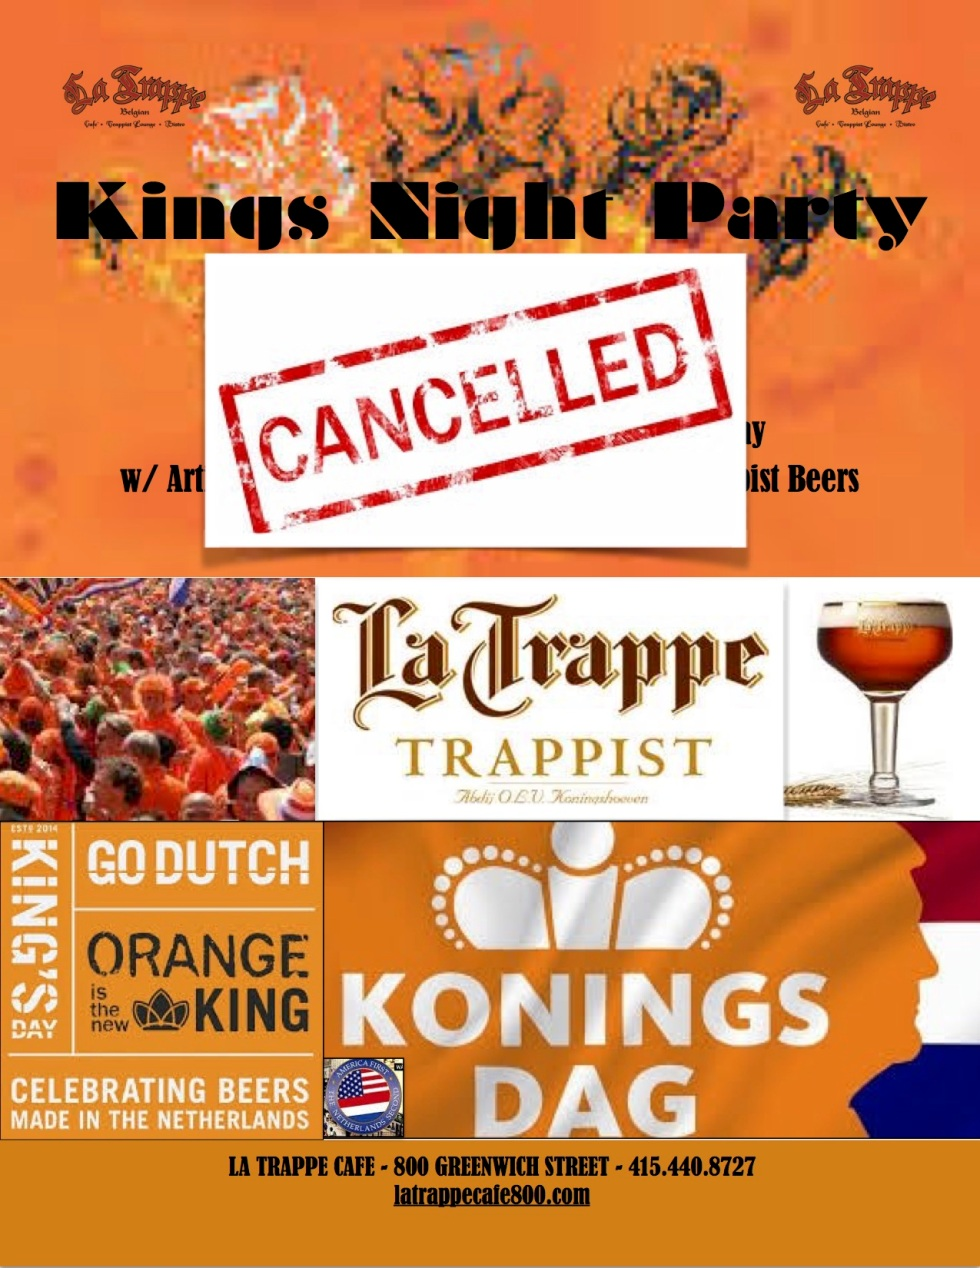 Kings Day 2017 Cancelled